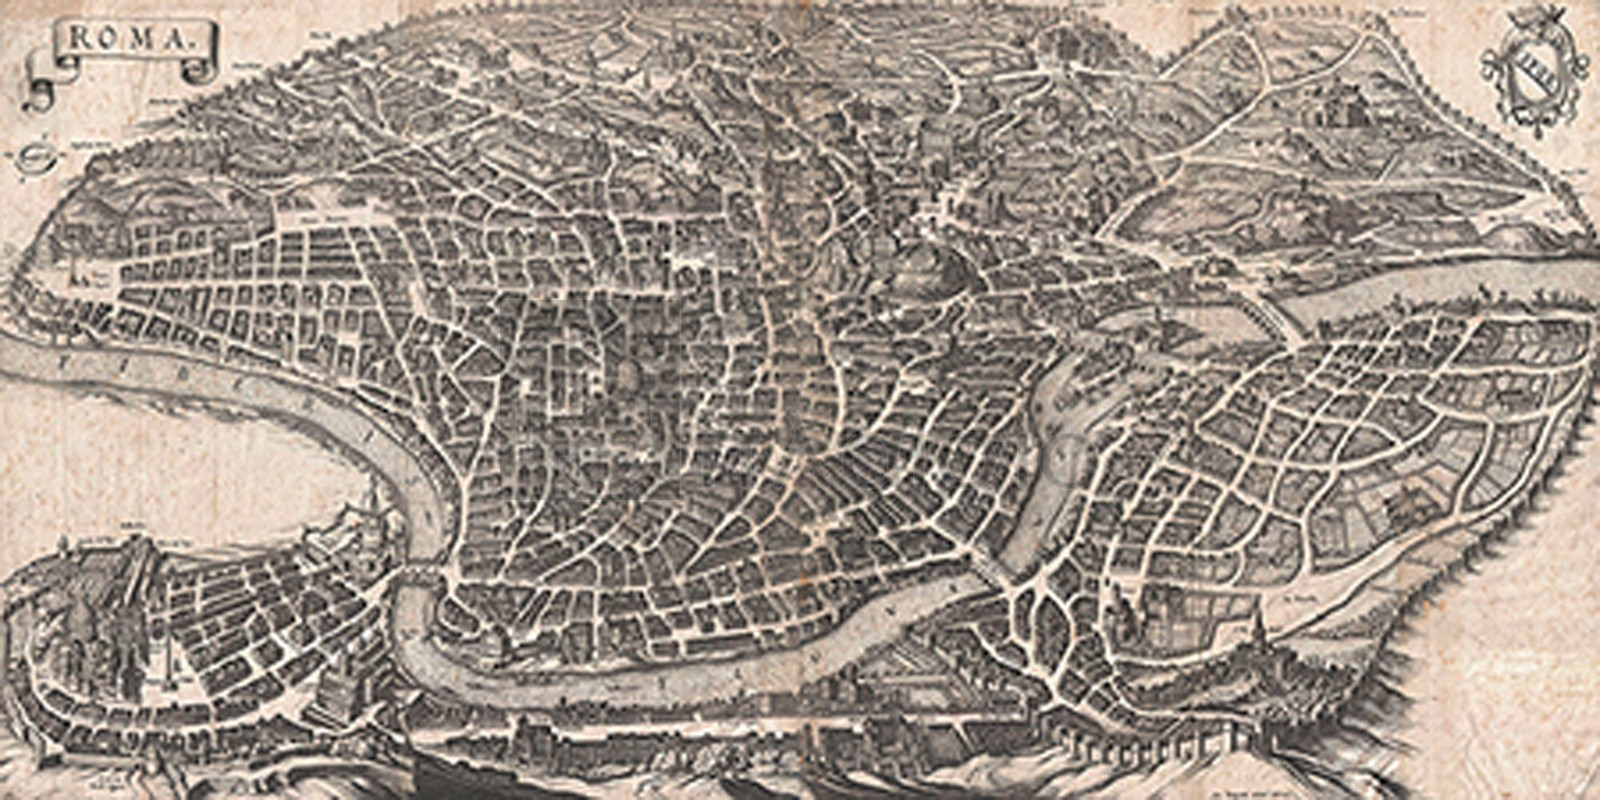 Matthaus Merian - Panoramic View of Rome, 1640